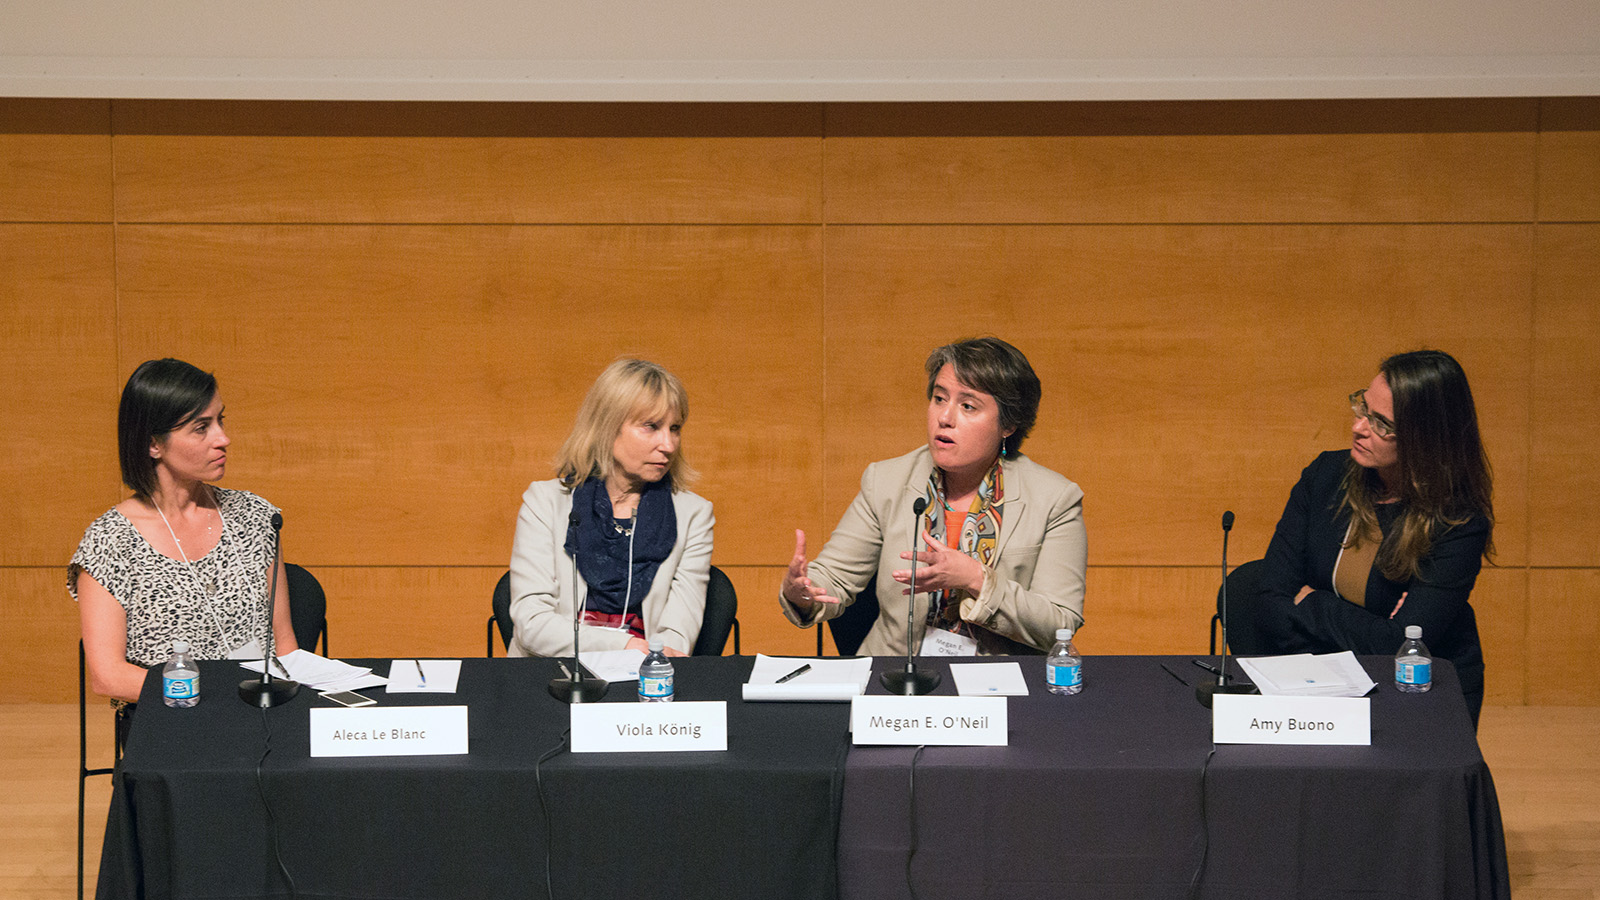 Four women at a panel discussion.